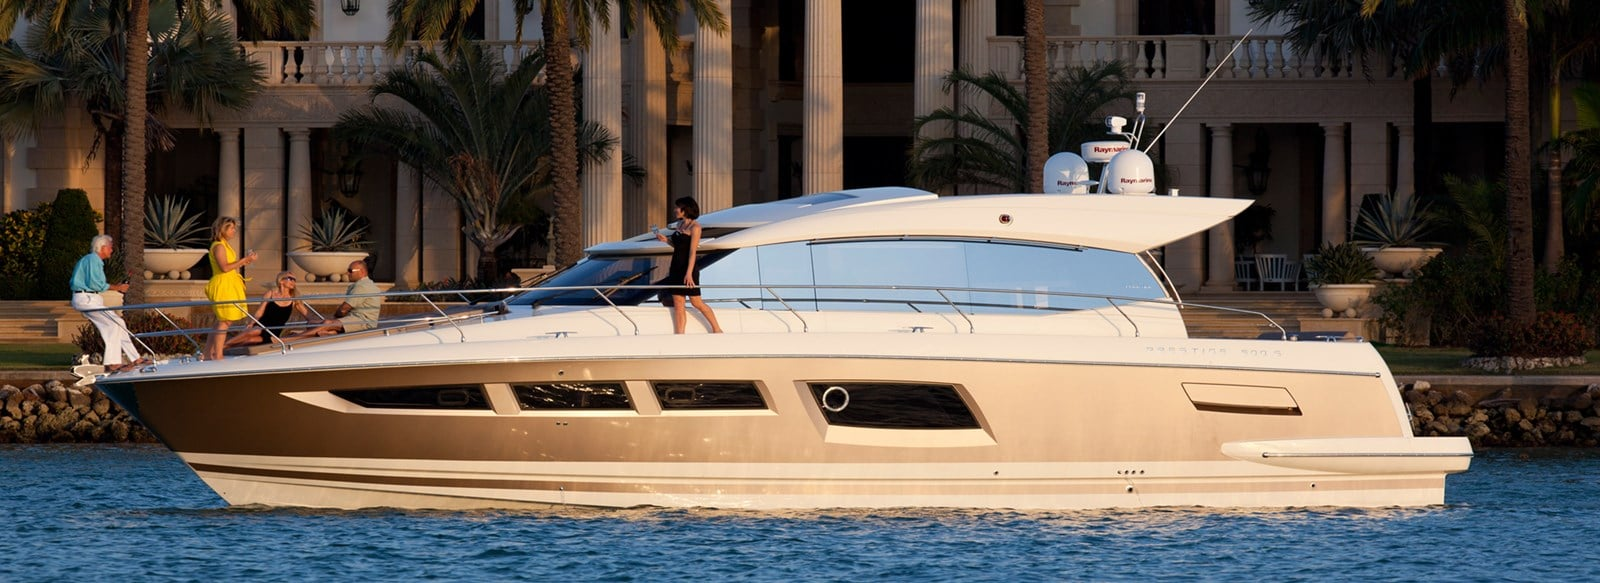 new prestige 500s yacht yacht for sale